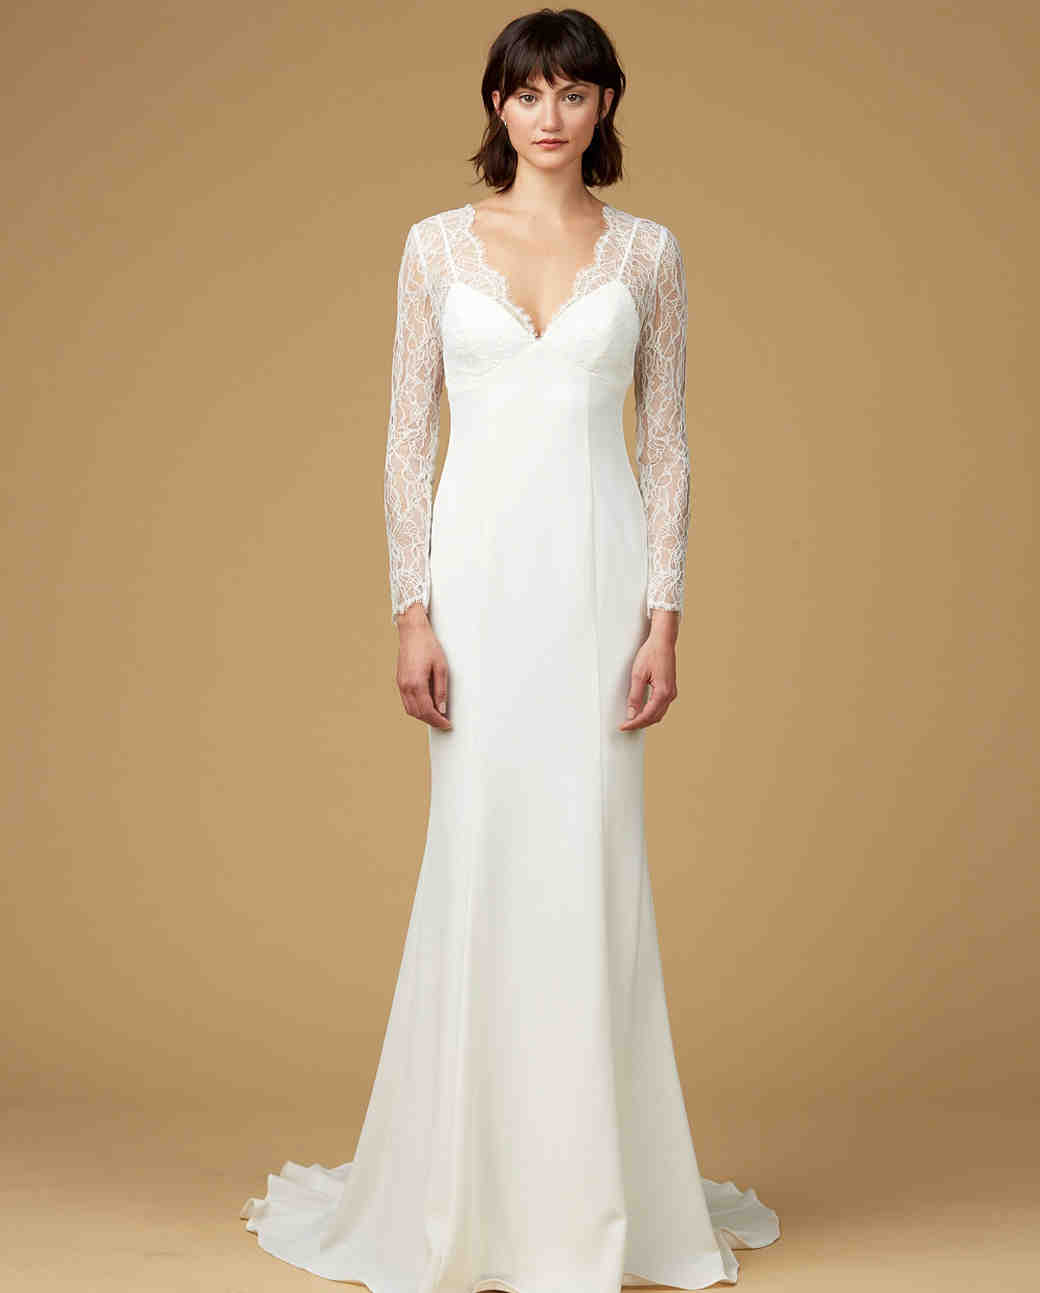 Vows Wedding Dresses 59 Nice Amsale Nouvelle Fall Wedding